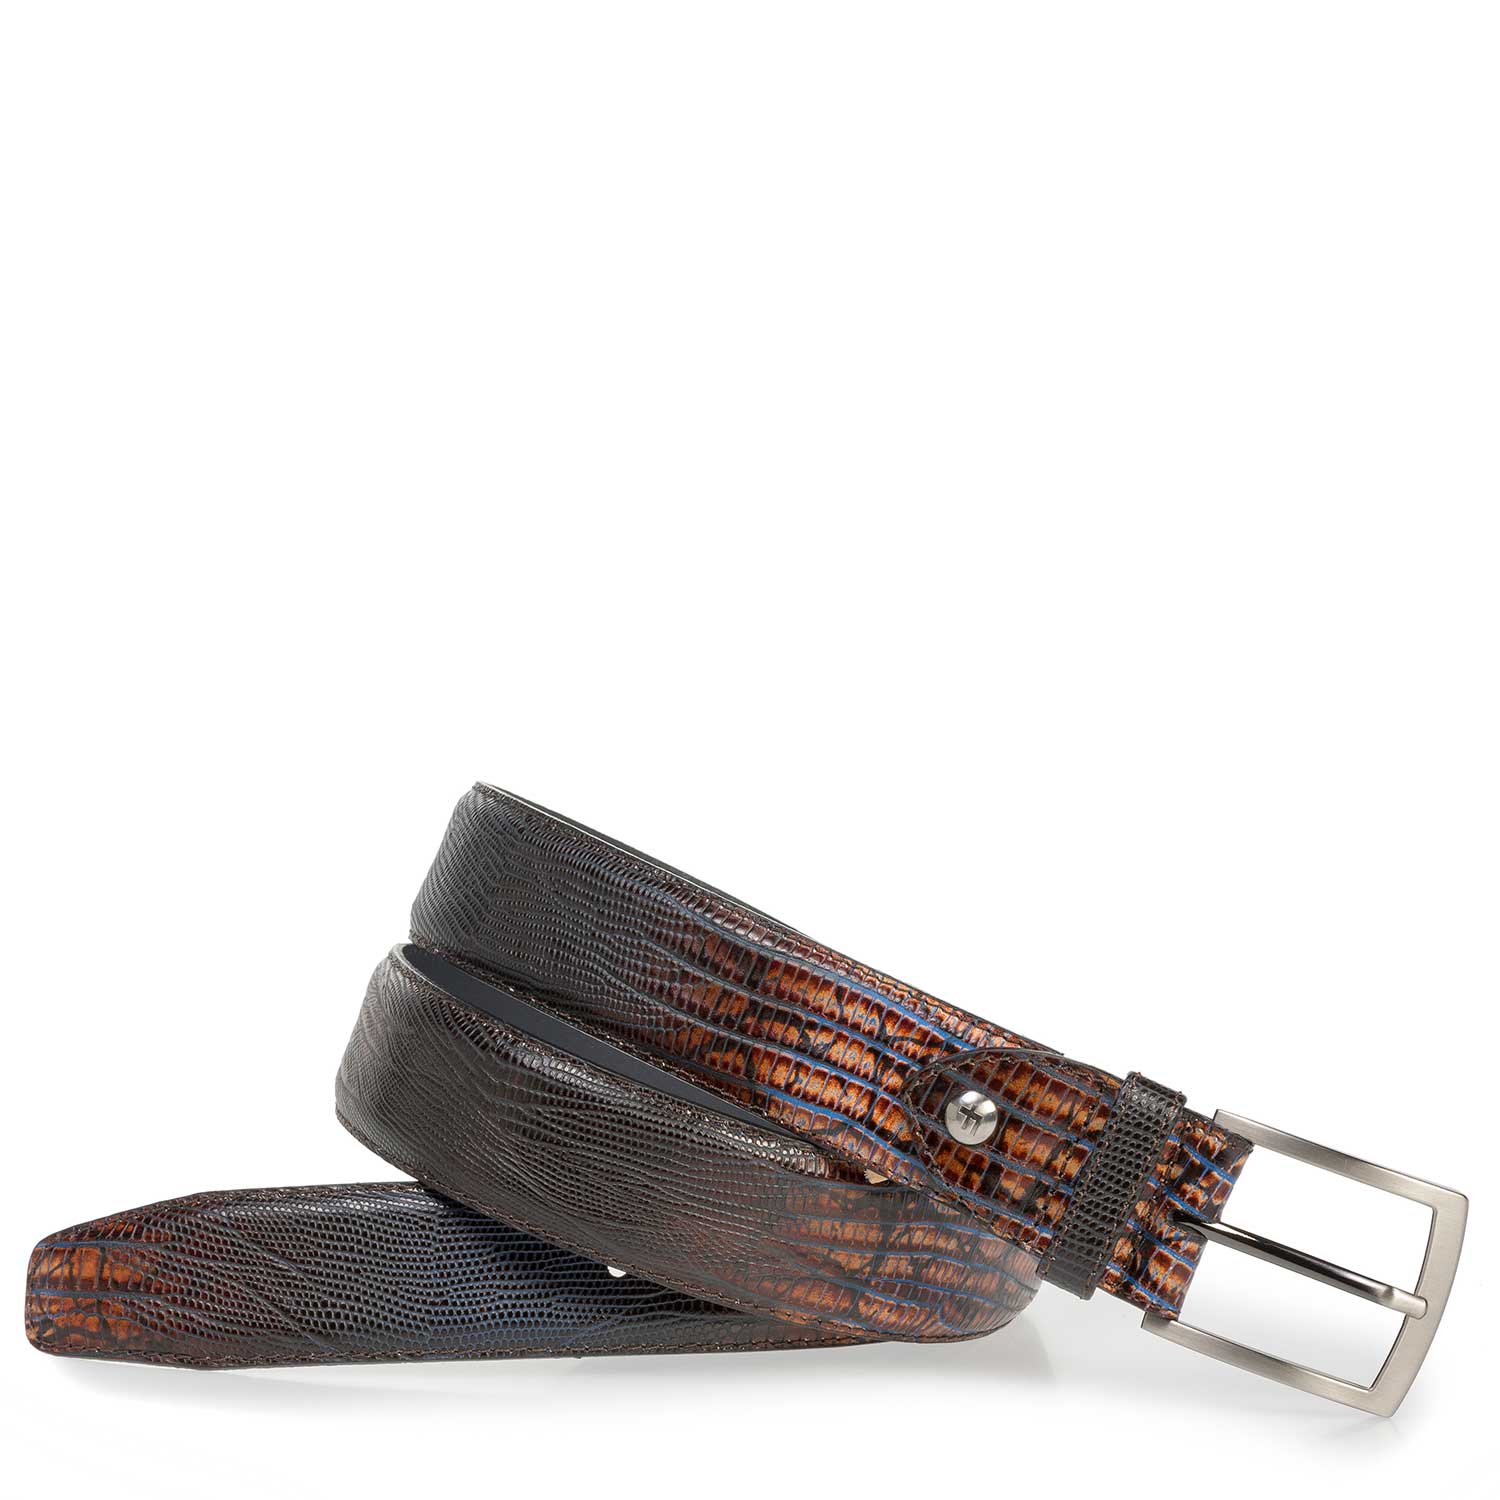 75201/06 - Cognac-coloured leather belt with lizard print